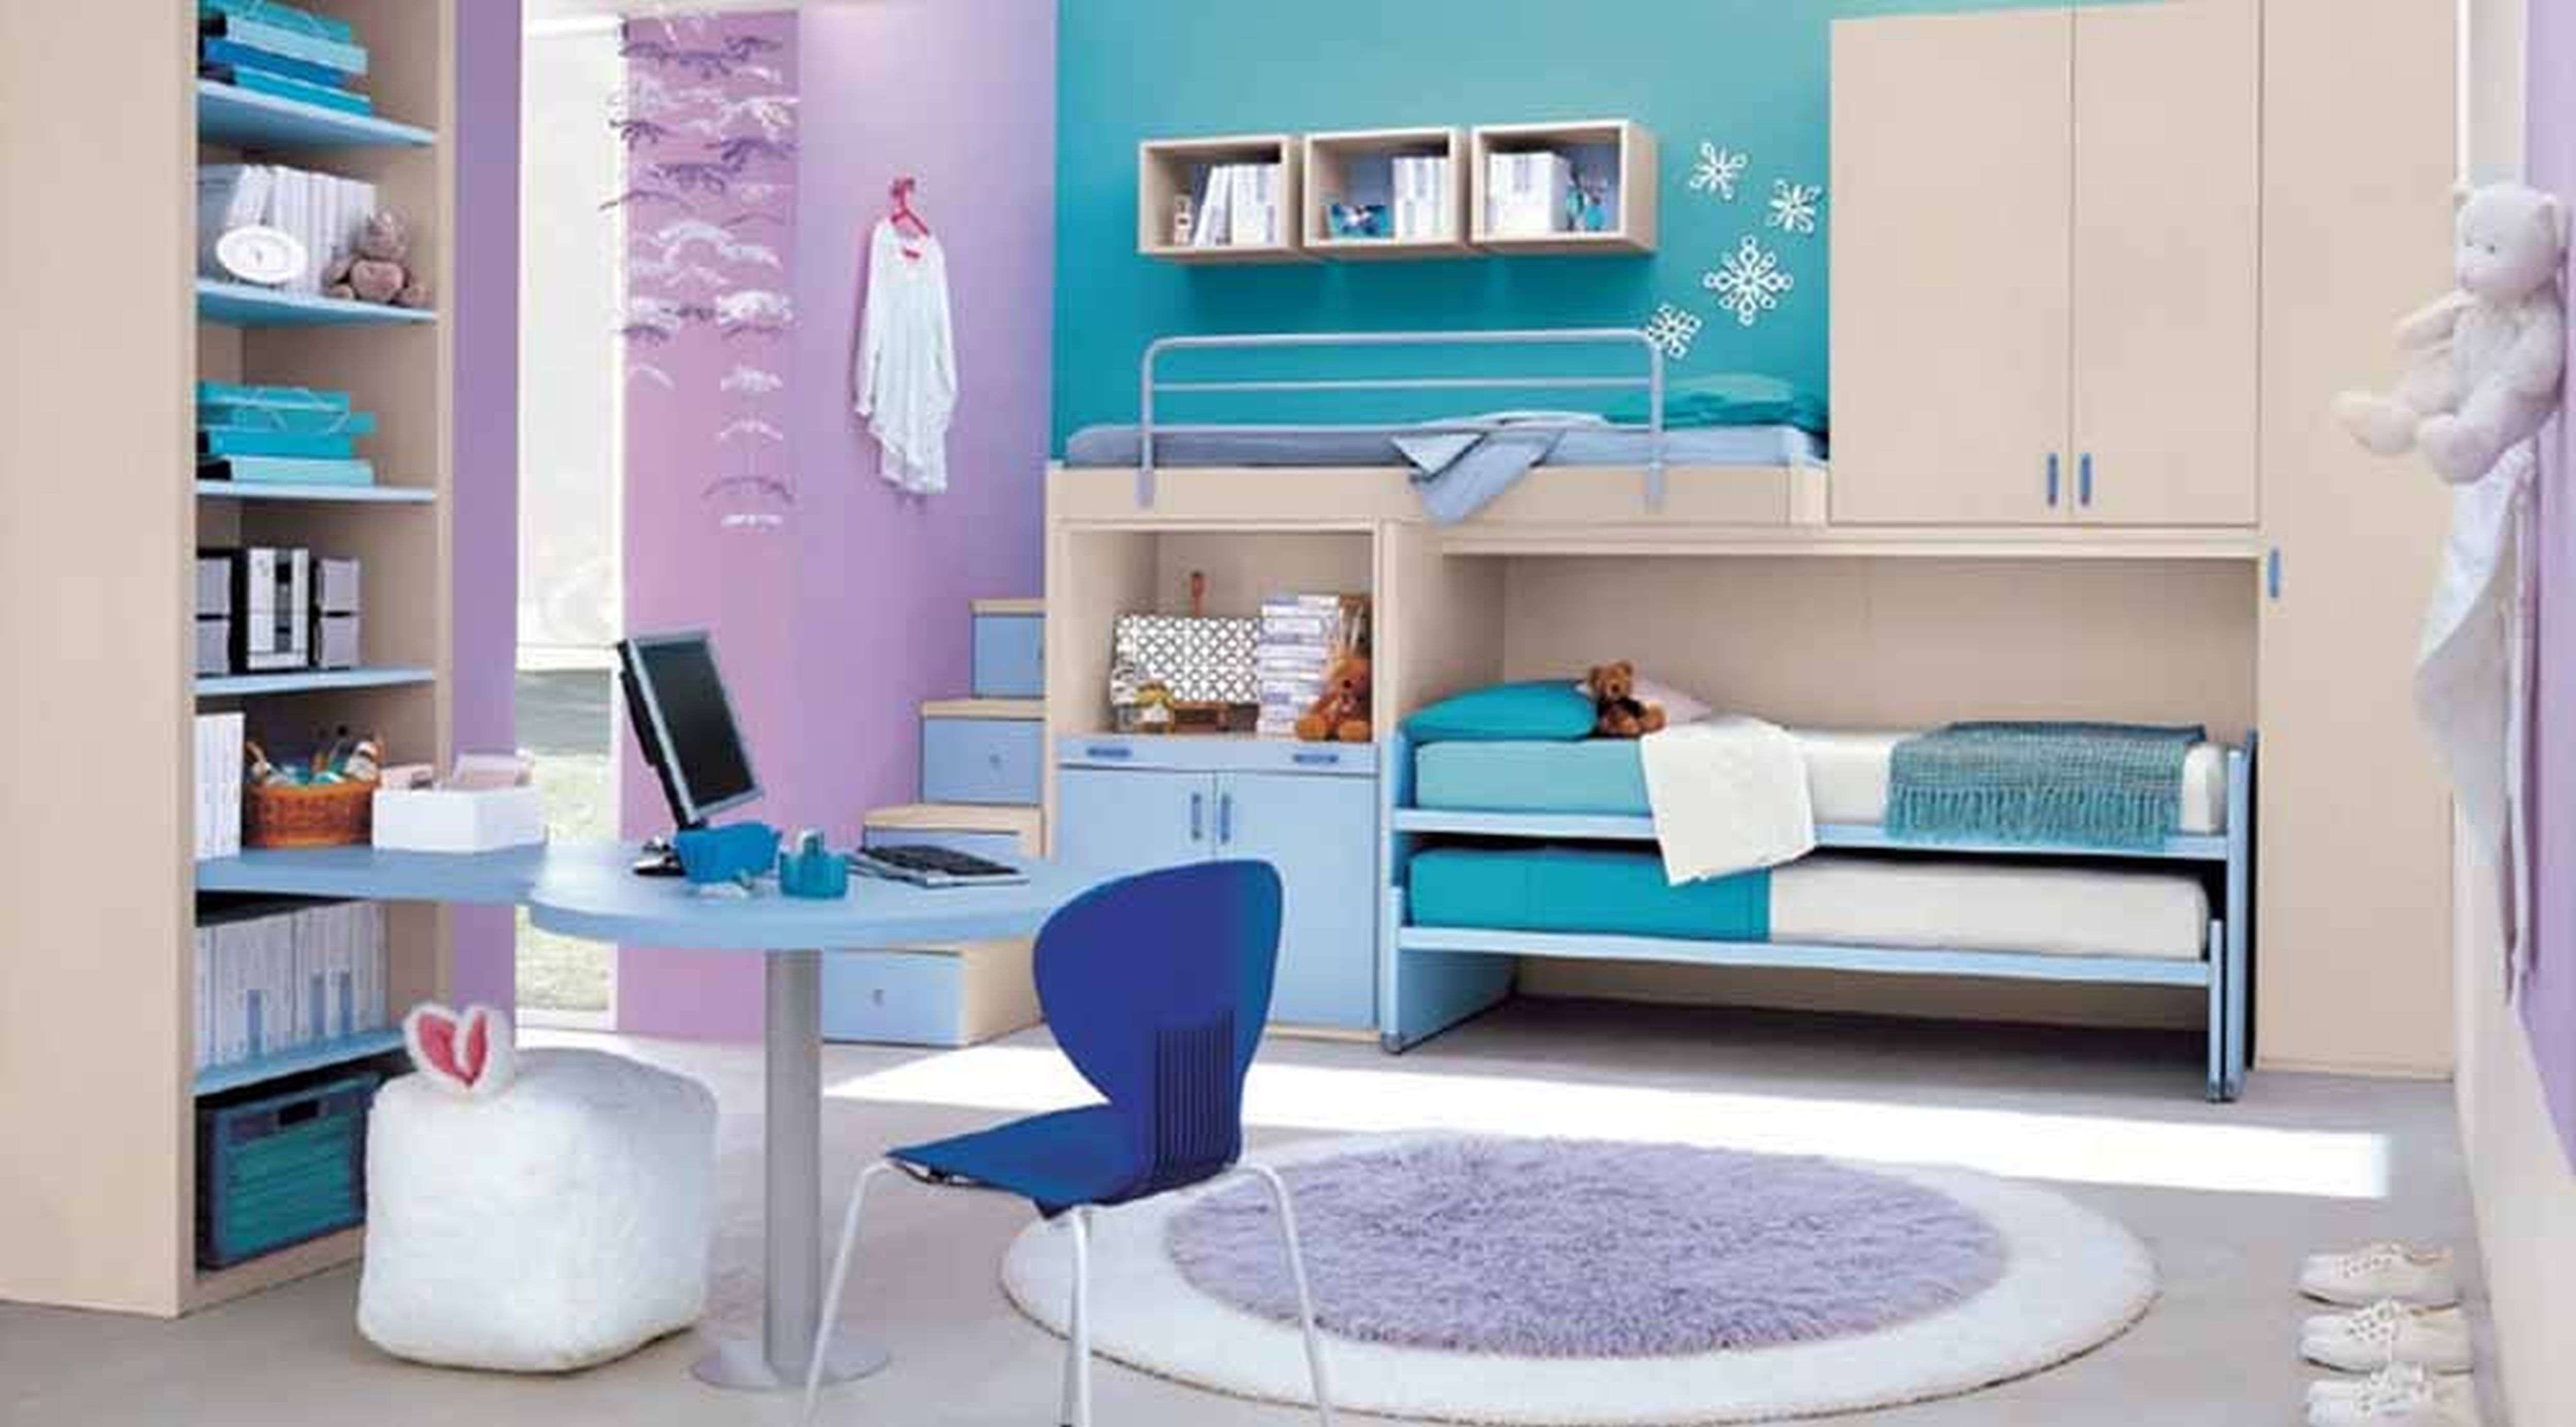 Round Rug Carpet Decorating Ikea Kids Room Ideas Small